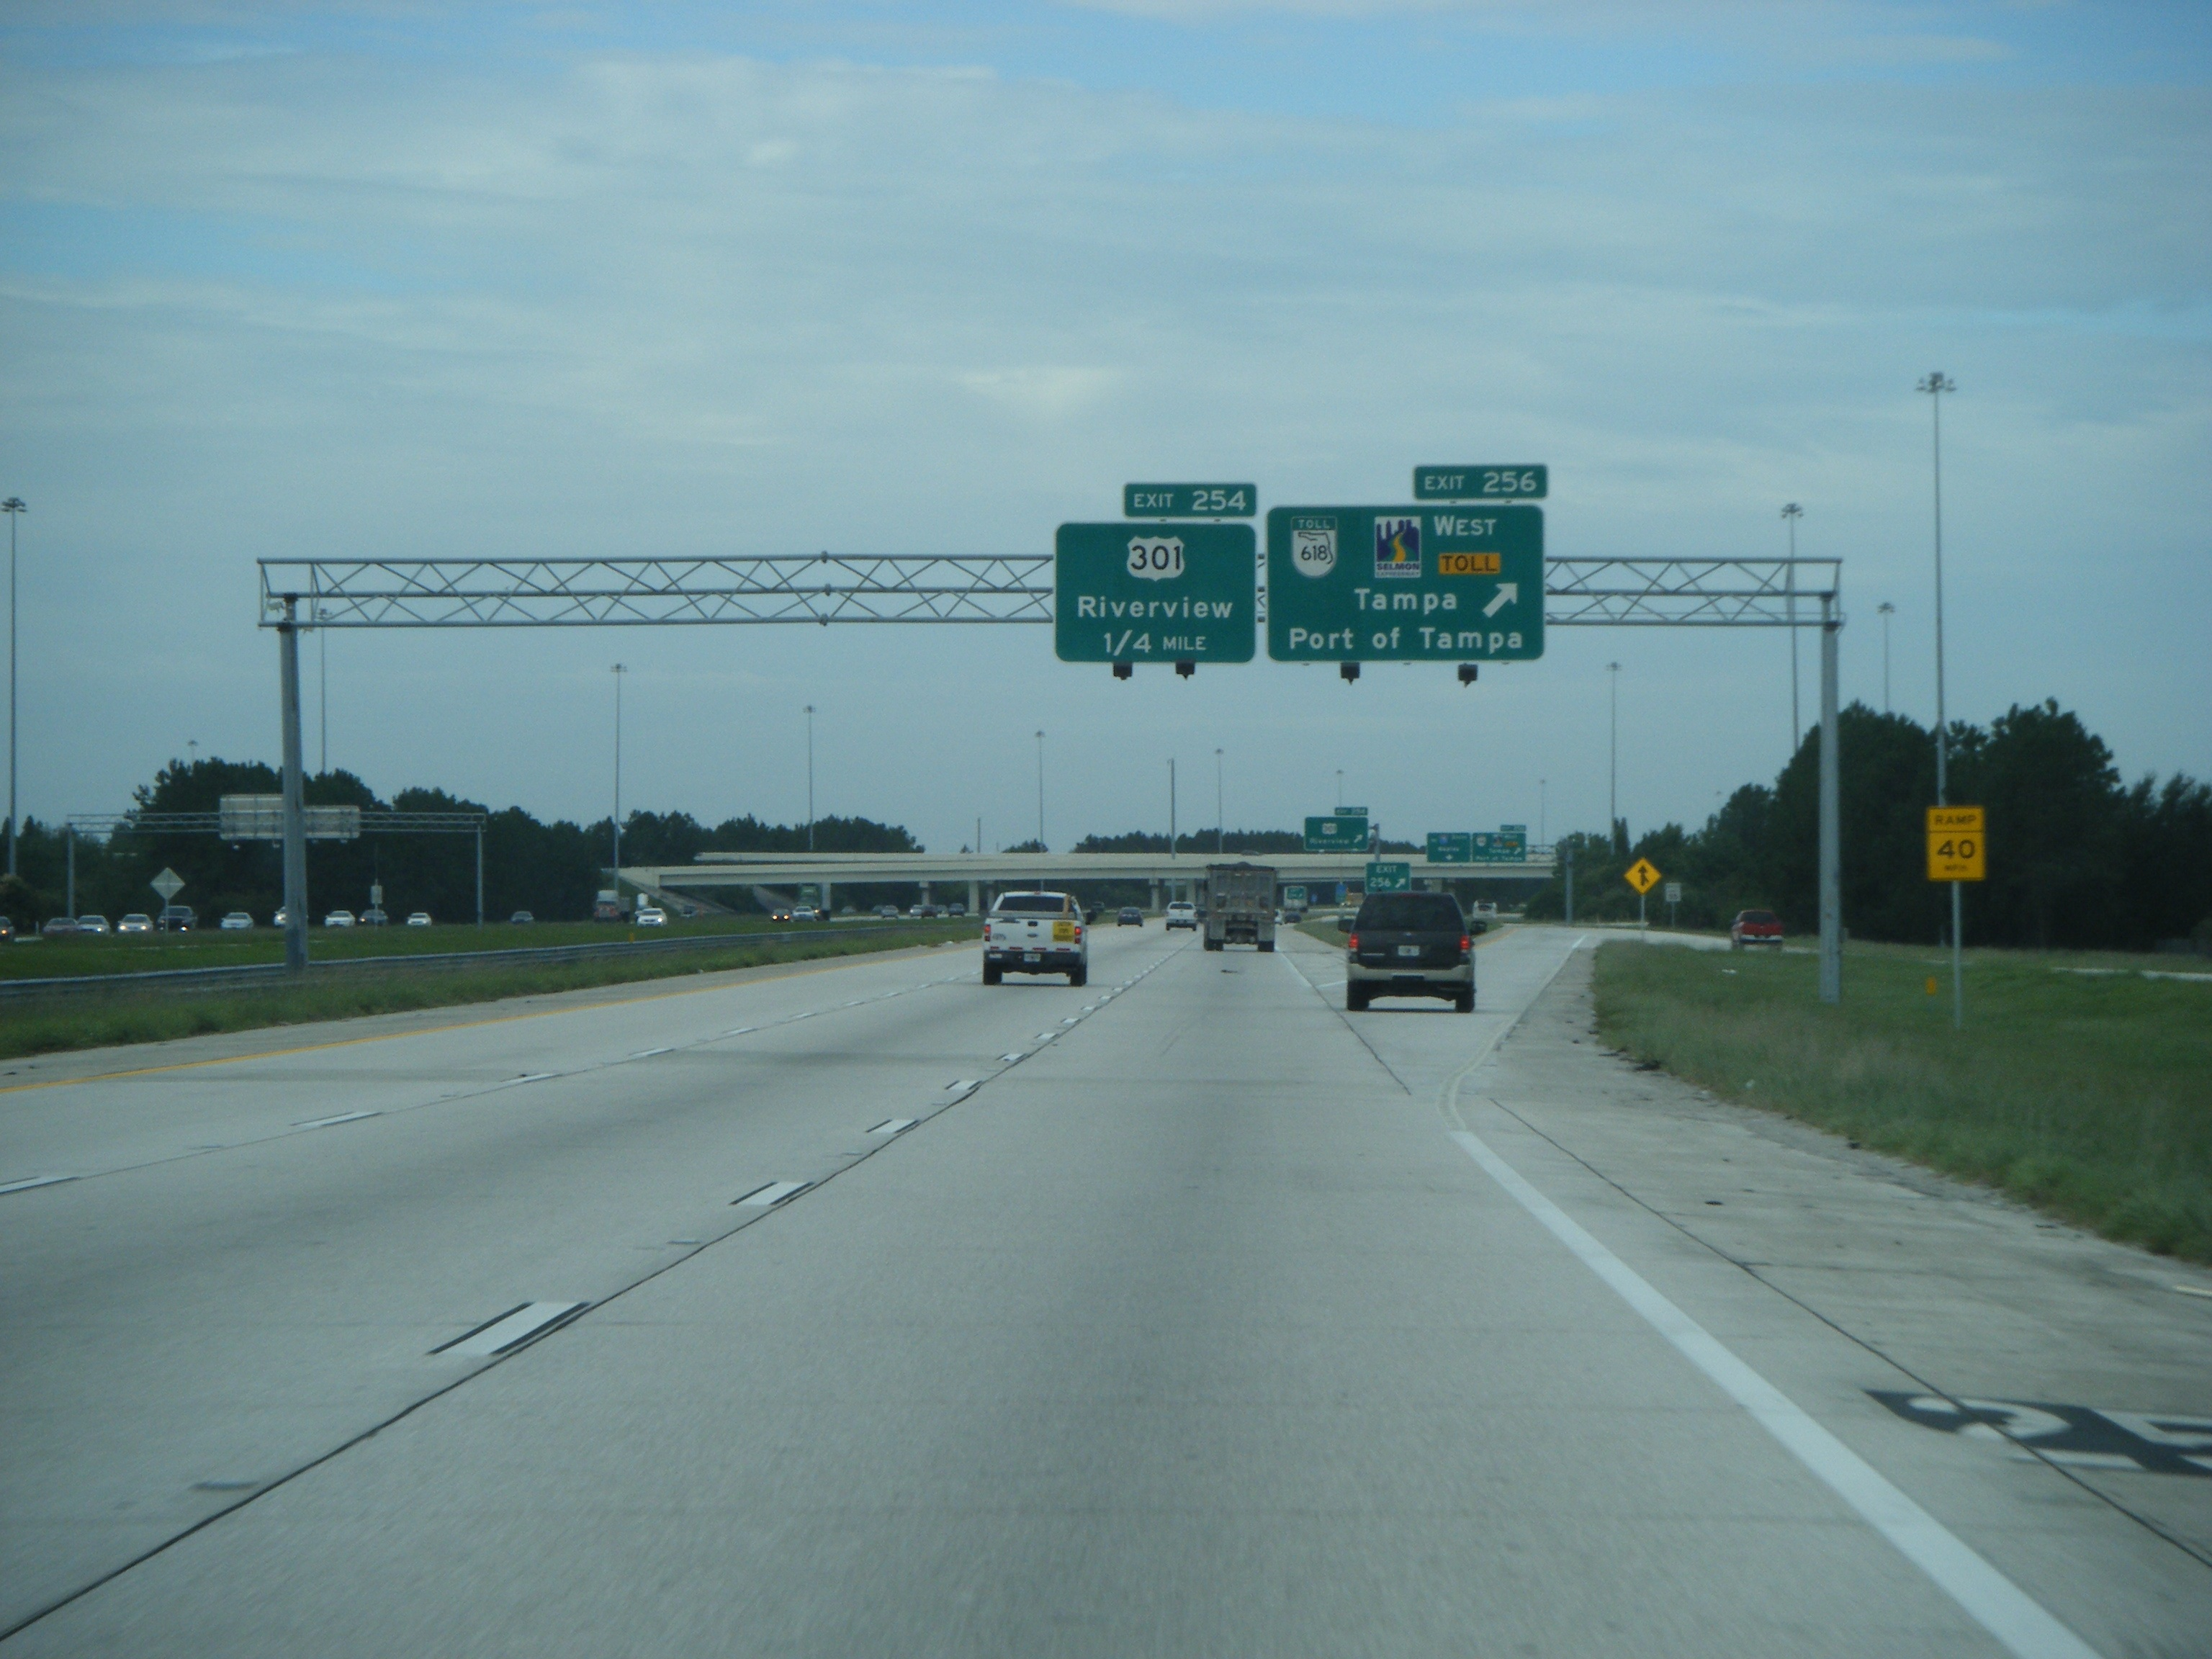 File:I-75 SB at FL 618 exit.jpg - Wikimedia Commons on i-65 route map, i-75 mile marker map, i-75 ohio map, weather i-75 map, on the usa i-75 map, interstate 75 map, interstate route map, ohio route map, i-75 florida map,